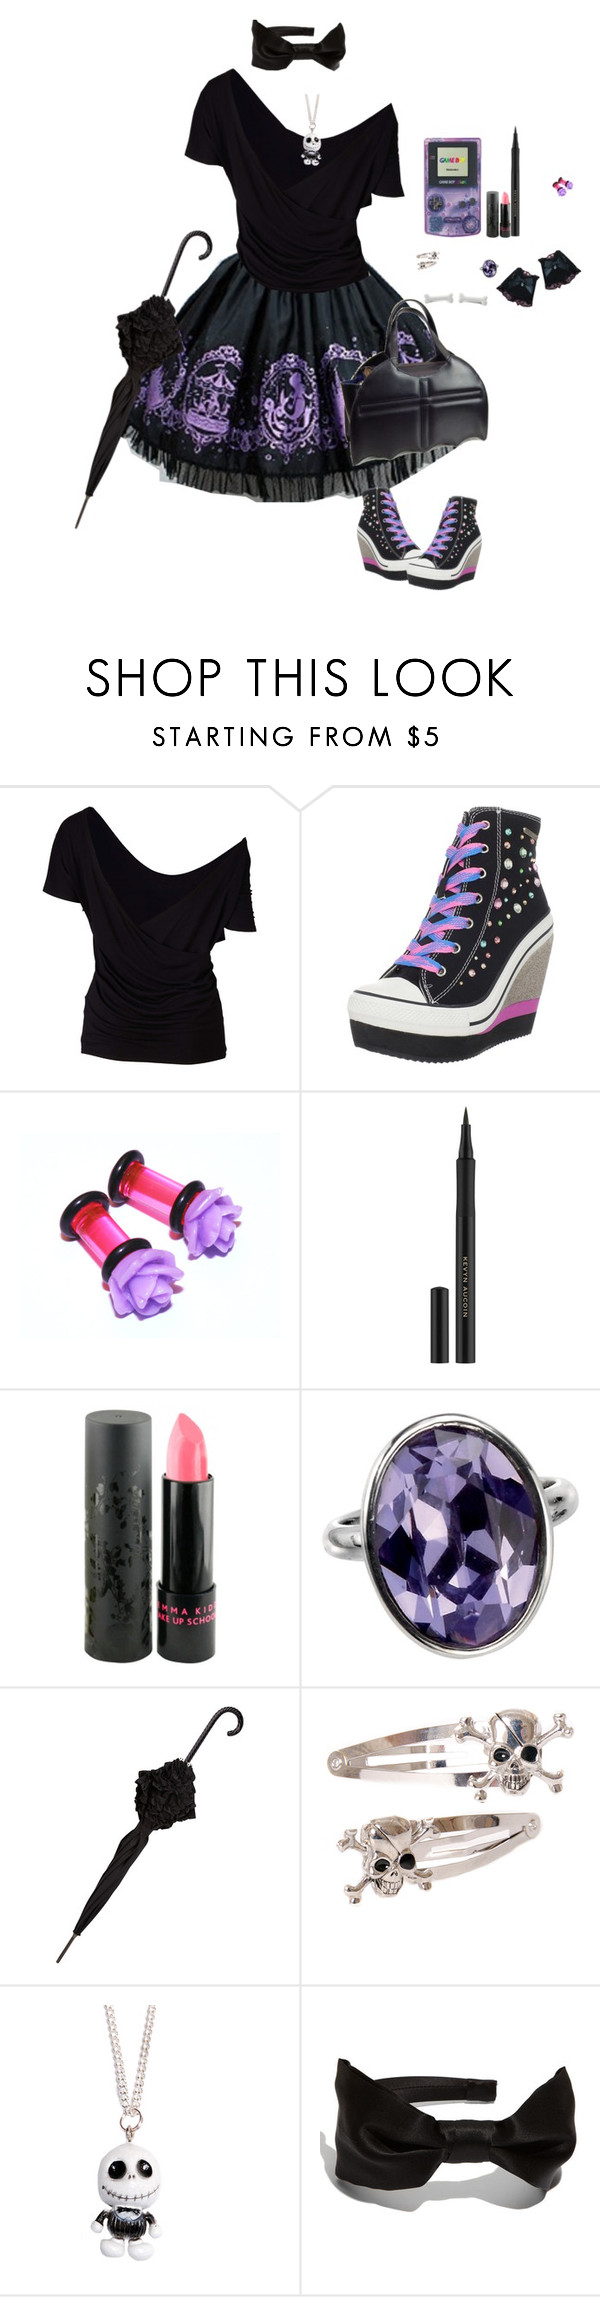 """""""Sem título #481"""" by caaandy ❤ liked on Polyvore featuring Sud Express, Rock & Candy, Kevyn Aucoin, Jemma Kidd, Mimco, Kreepsville 666 and L. Erickson"""